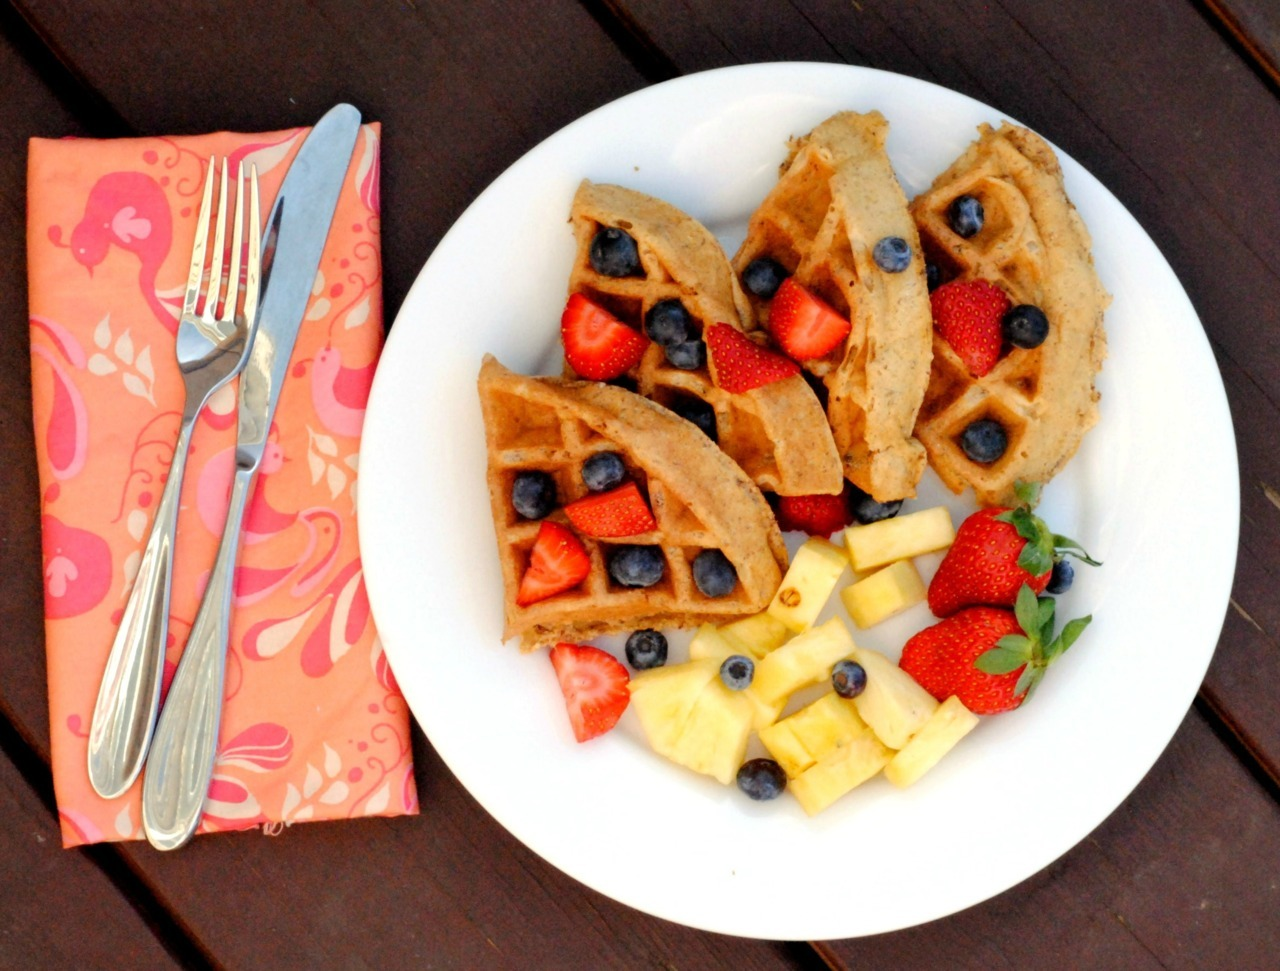 Strawberry, Banana, Fruit, Blueberry, Waffle